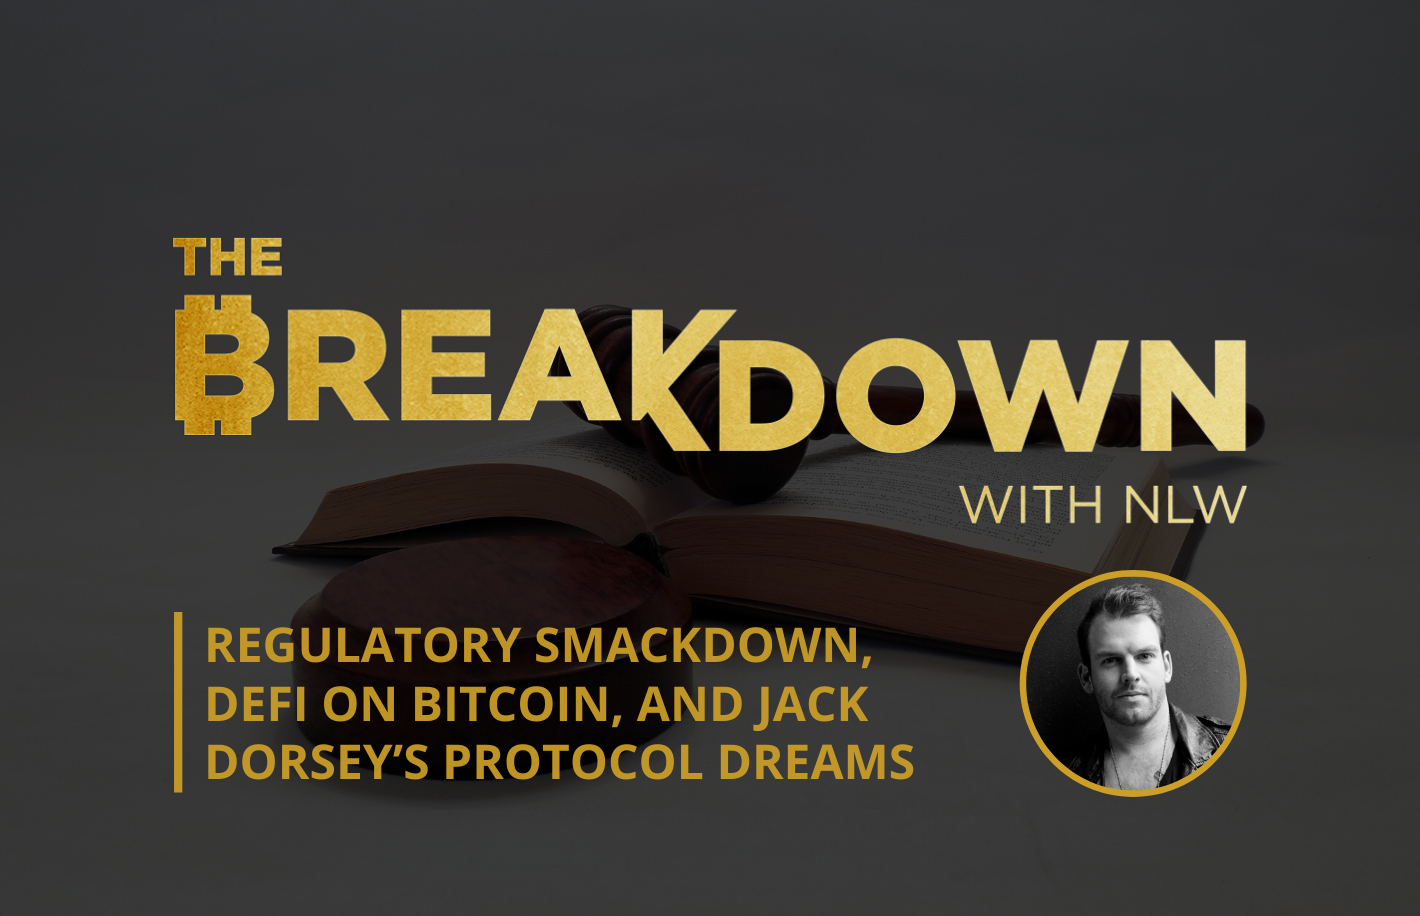 PODCAST: Introducing 'The Breakdown' With Nathaniel Whittemore